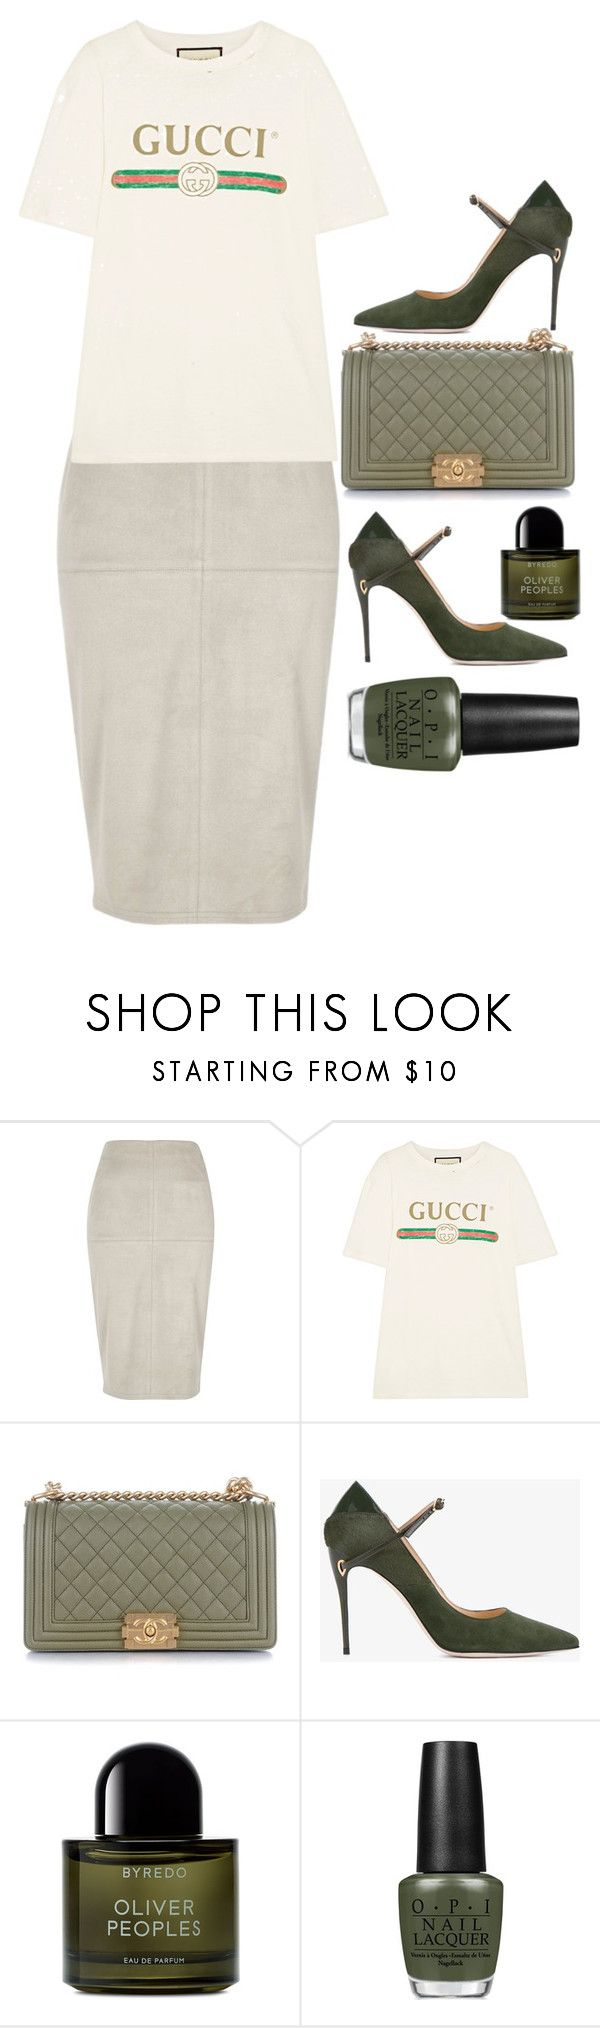 """accidentally basically the same as last lol"" by court-g ❤ liked on Polyvore featuring River Island, Gucci, Chanel, Jennifer Chamandi, Byredo, OPI, olive, Tshirt and guicci"